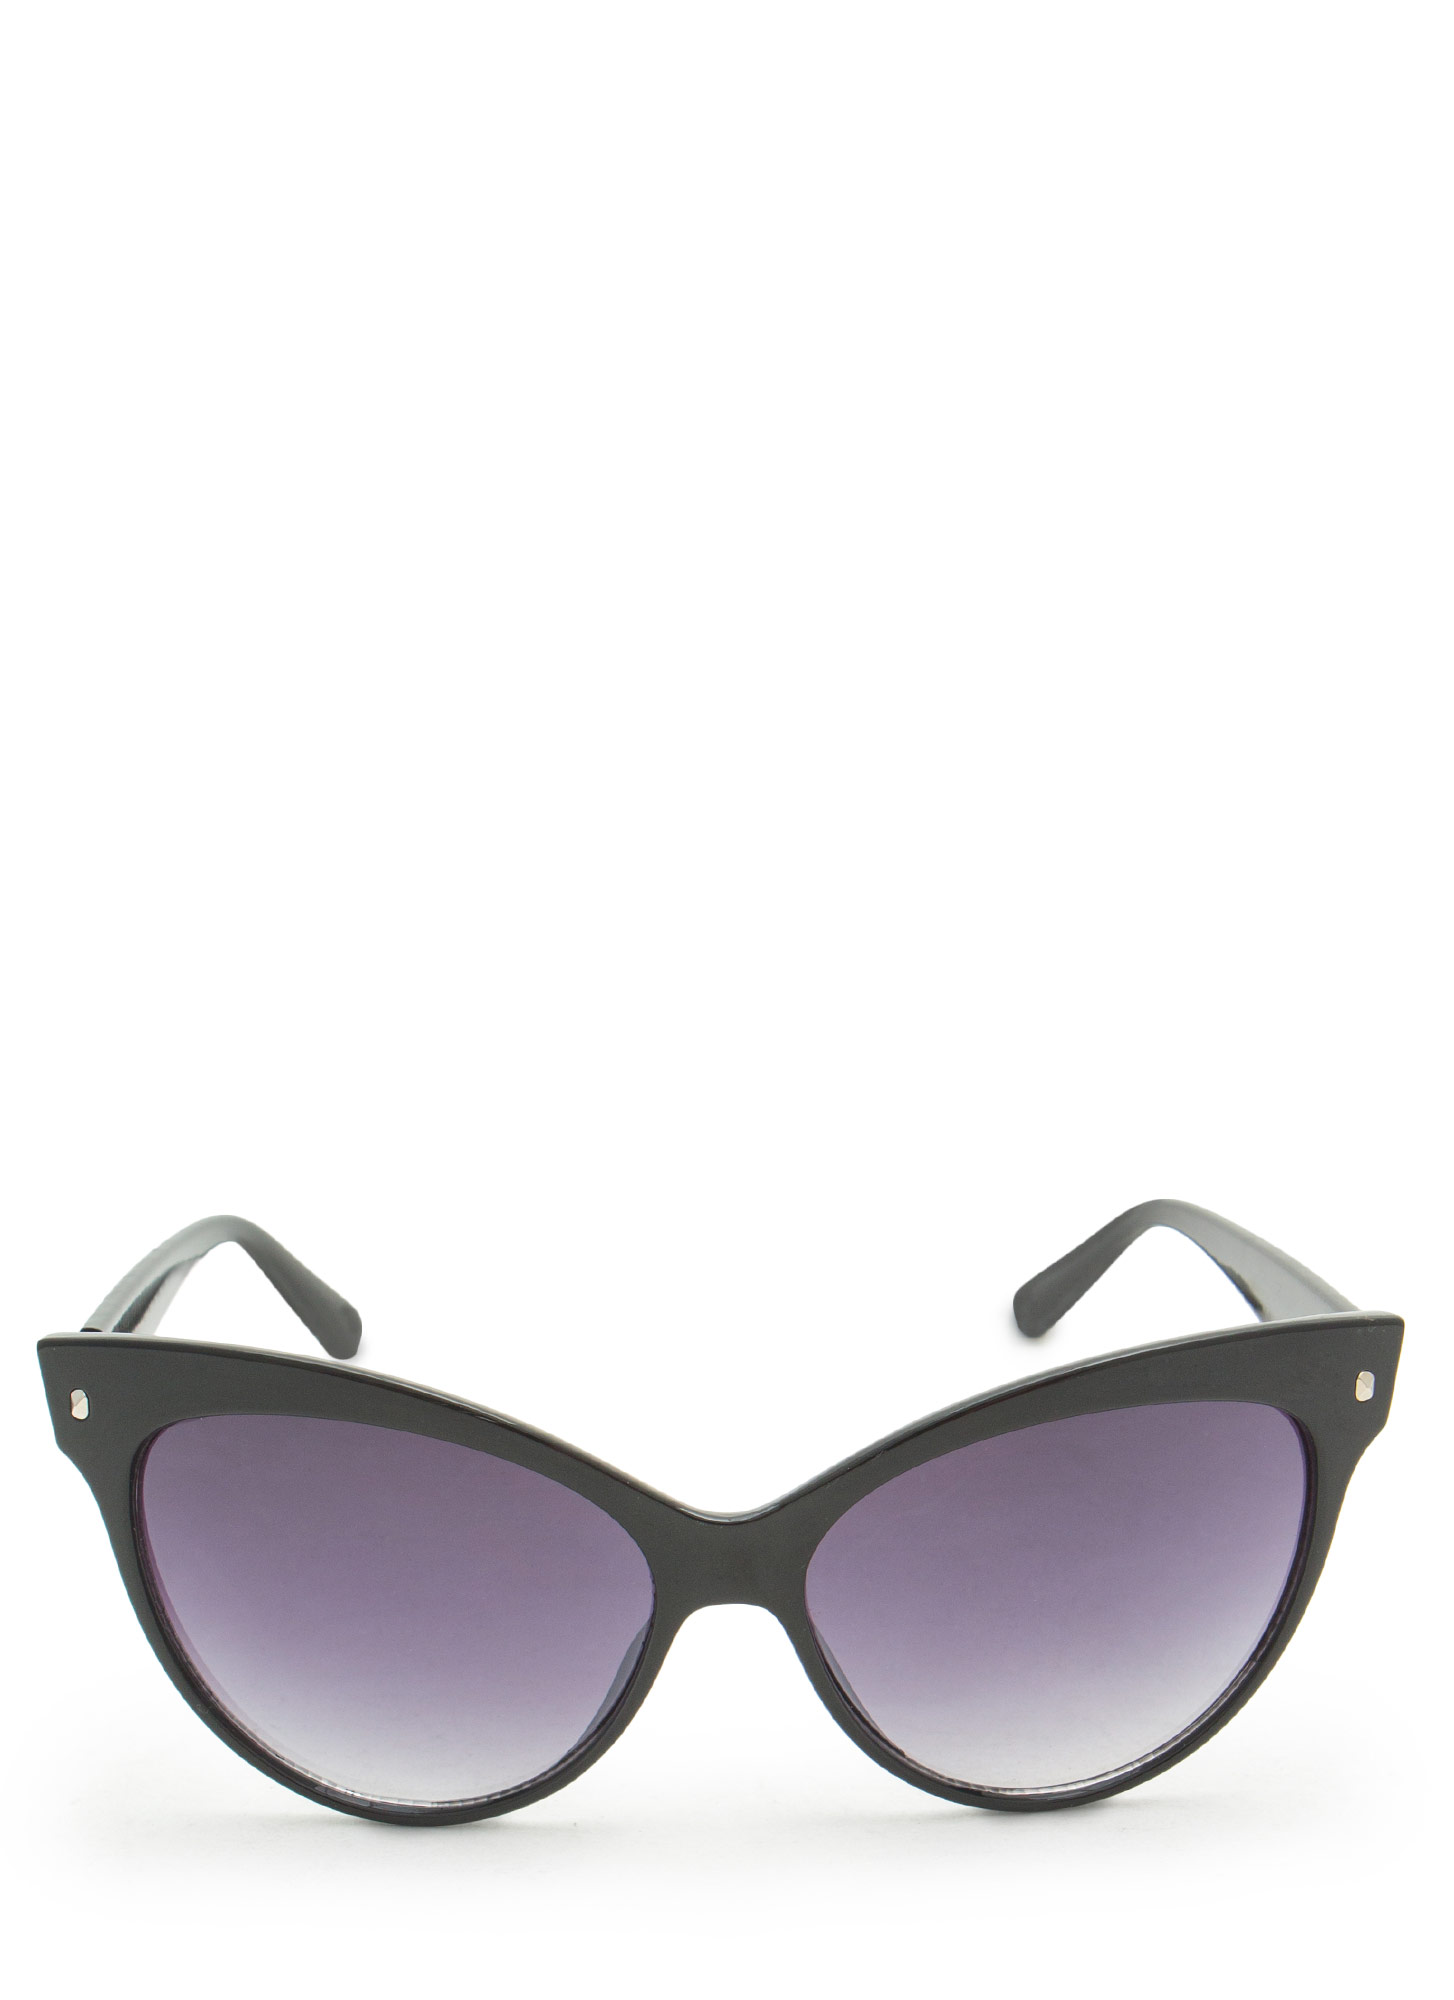 Retro Chic Cat Eye Sunglasses BLACK